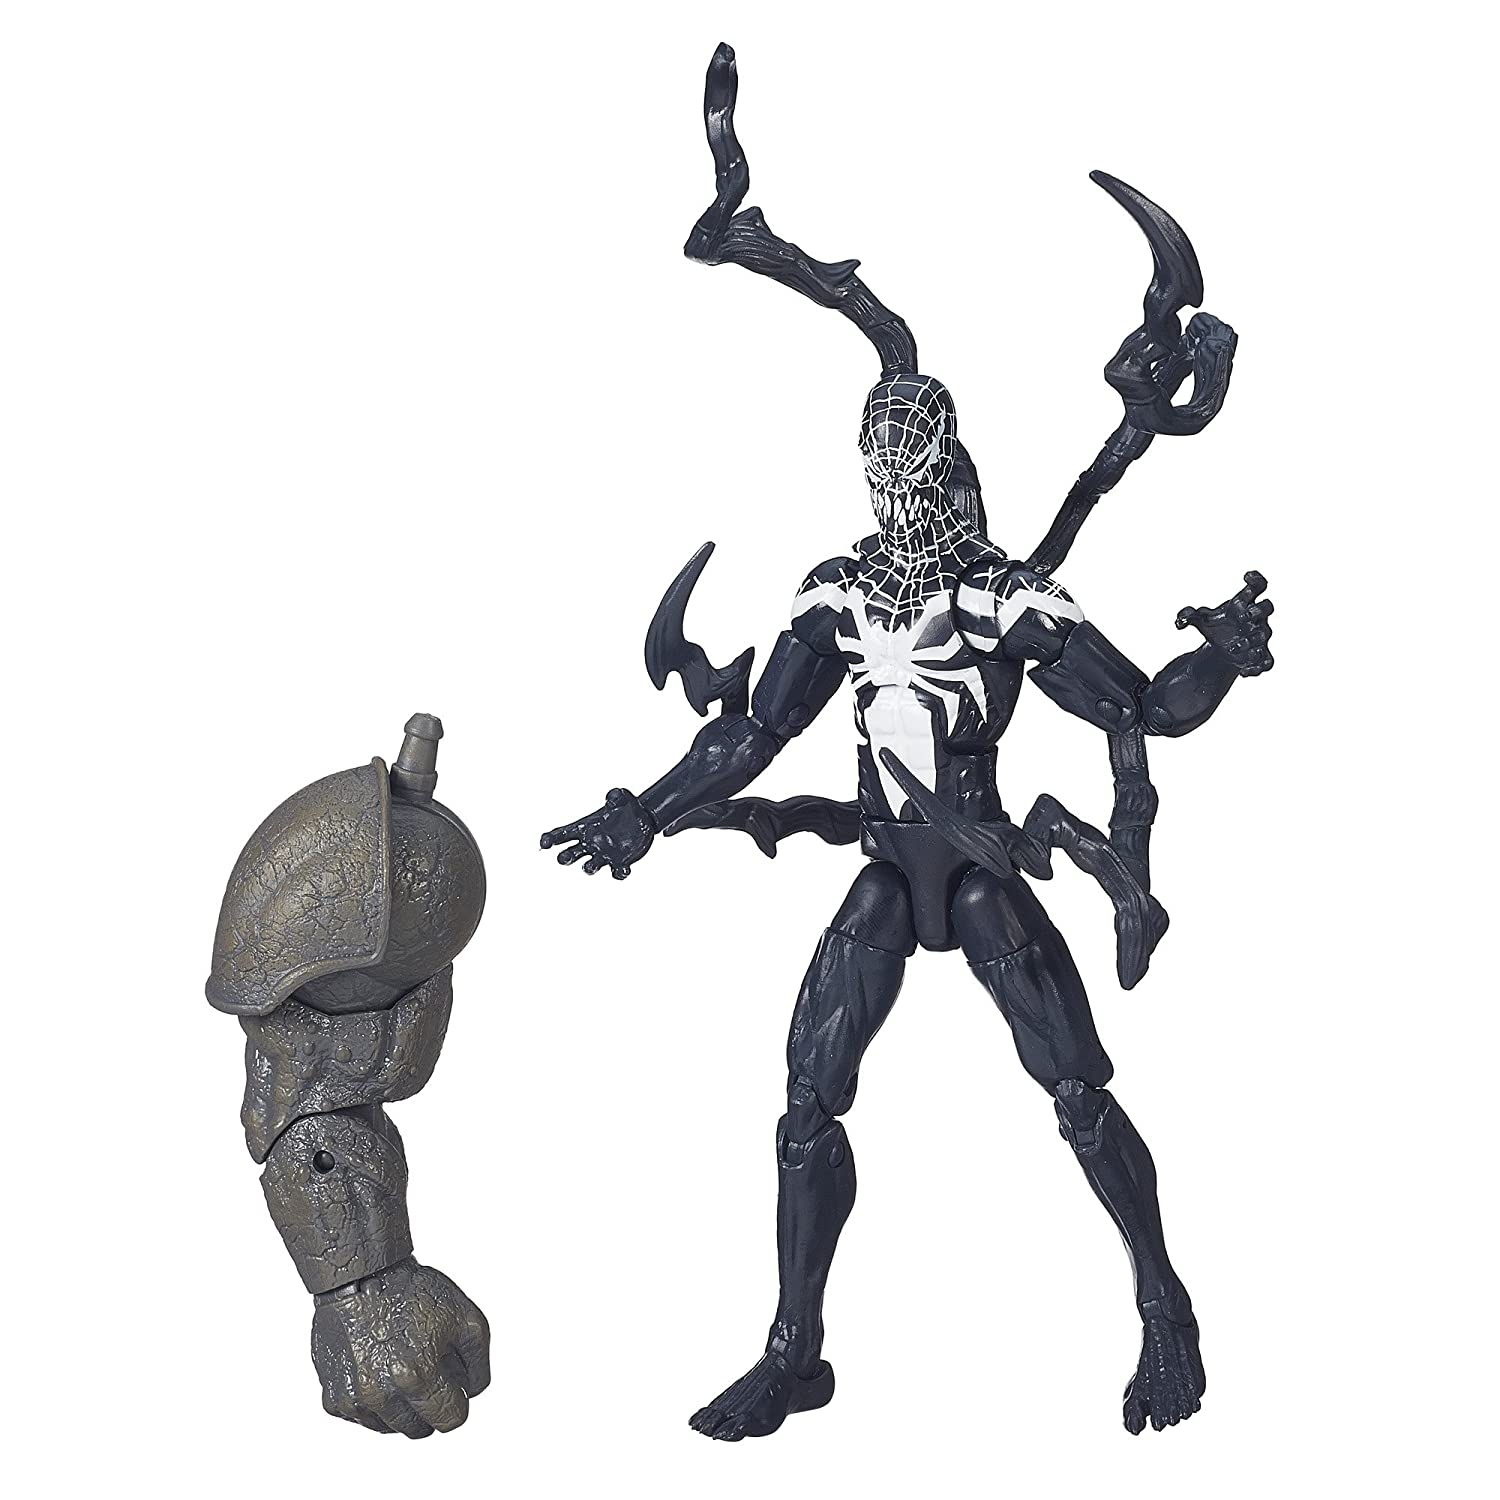 Marvel Legends 2015 Spider-Man Infinite Serie 2 Actionfiguren: Superior Venom jetzt kaufen